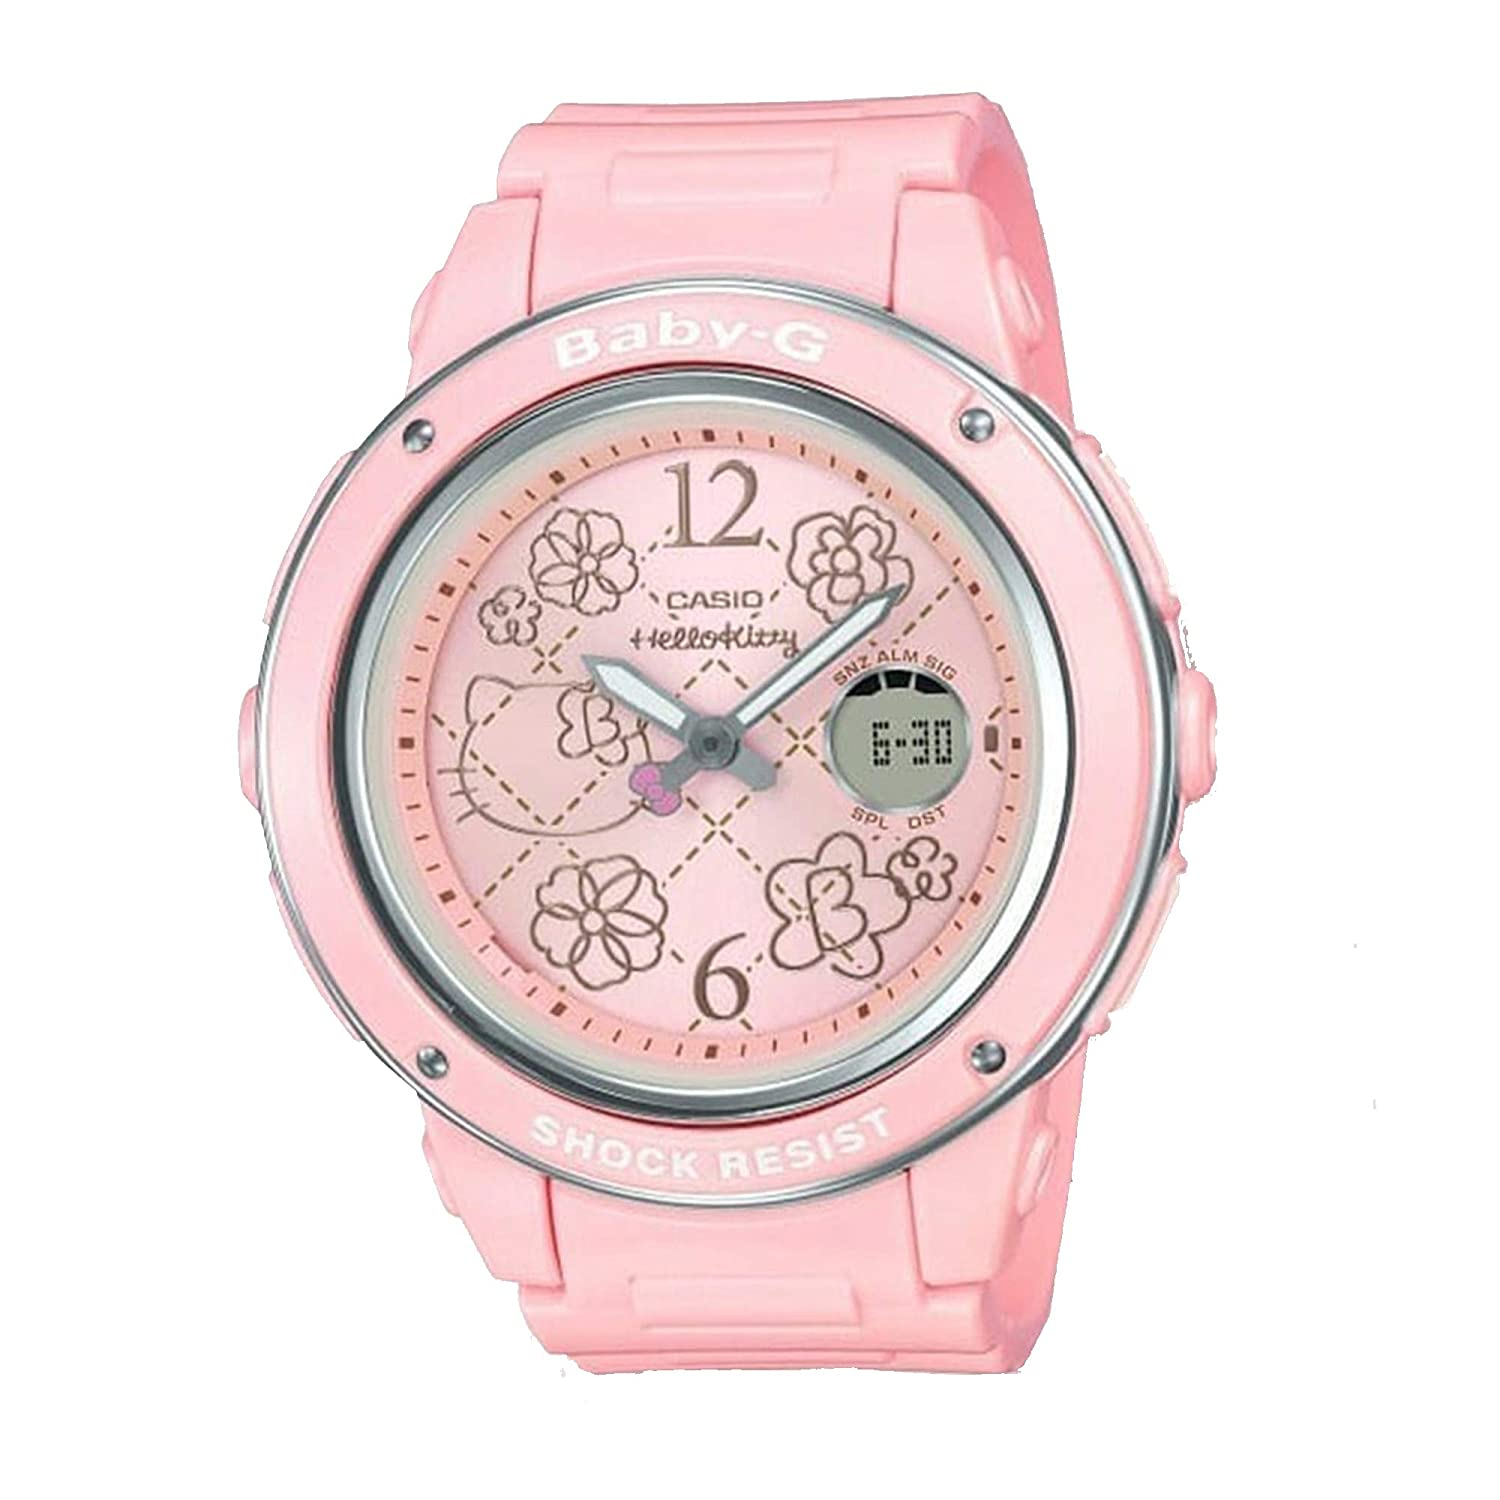 Amazon.com: Casio Baby-G Hello Kitty 2019 Edition White and Pink Watch BGA-150KT-7BCR: Watches